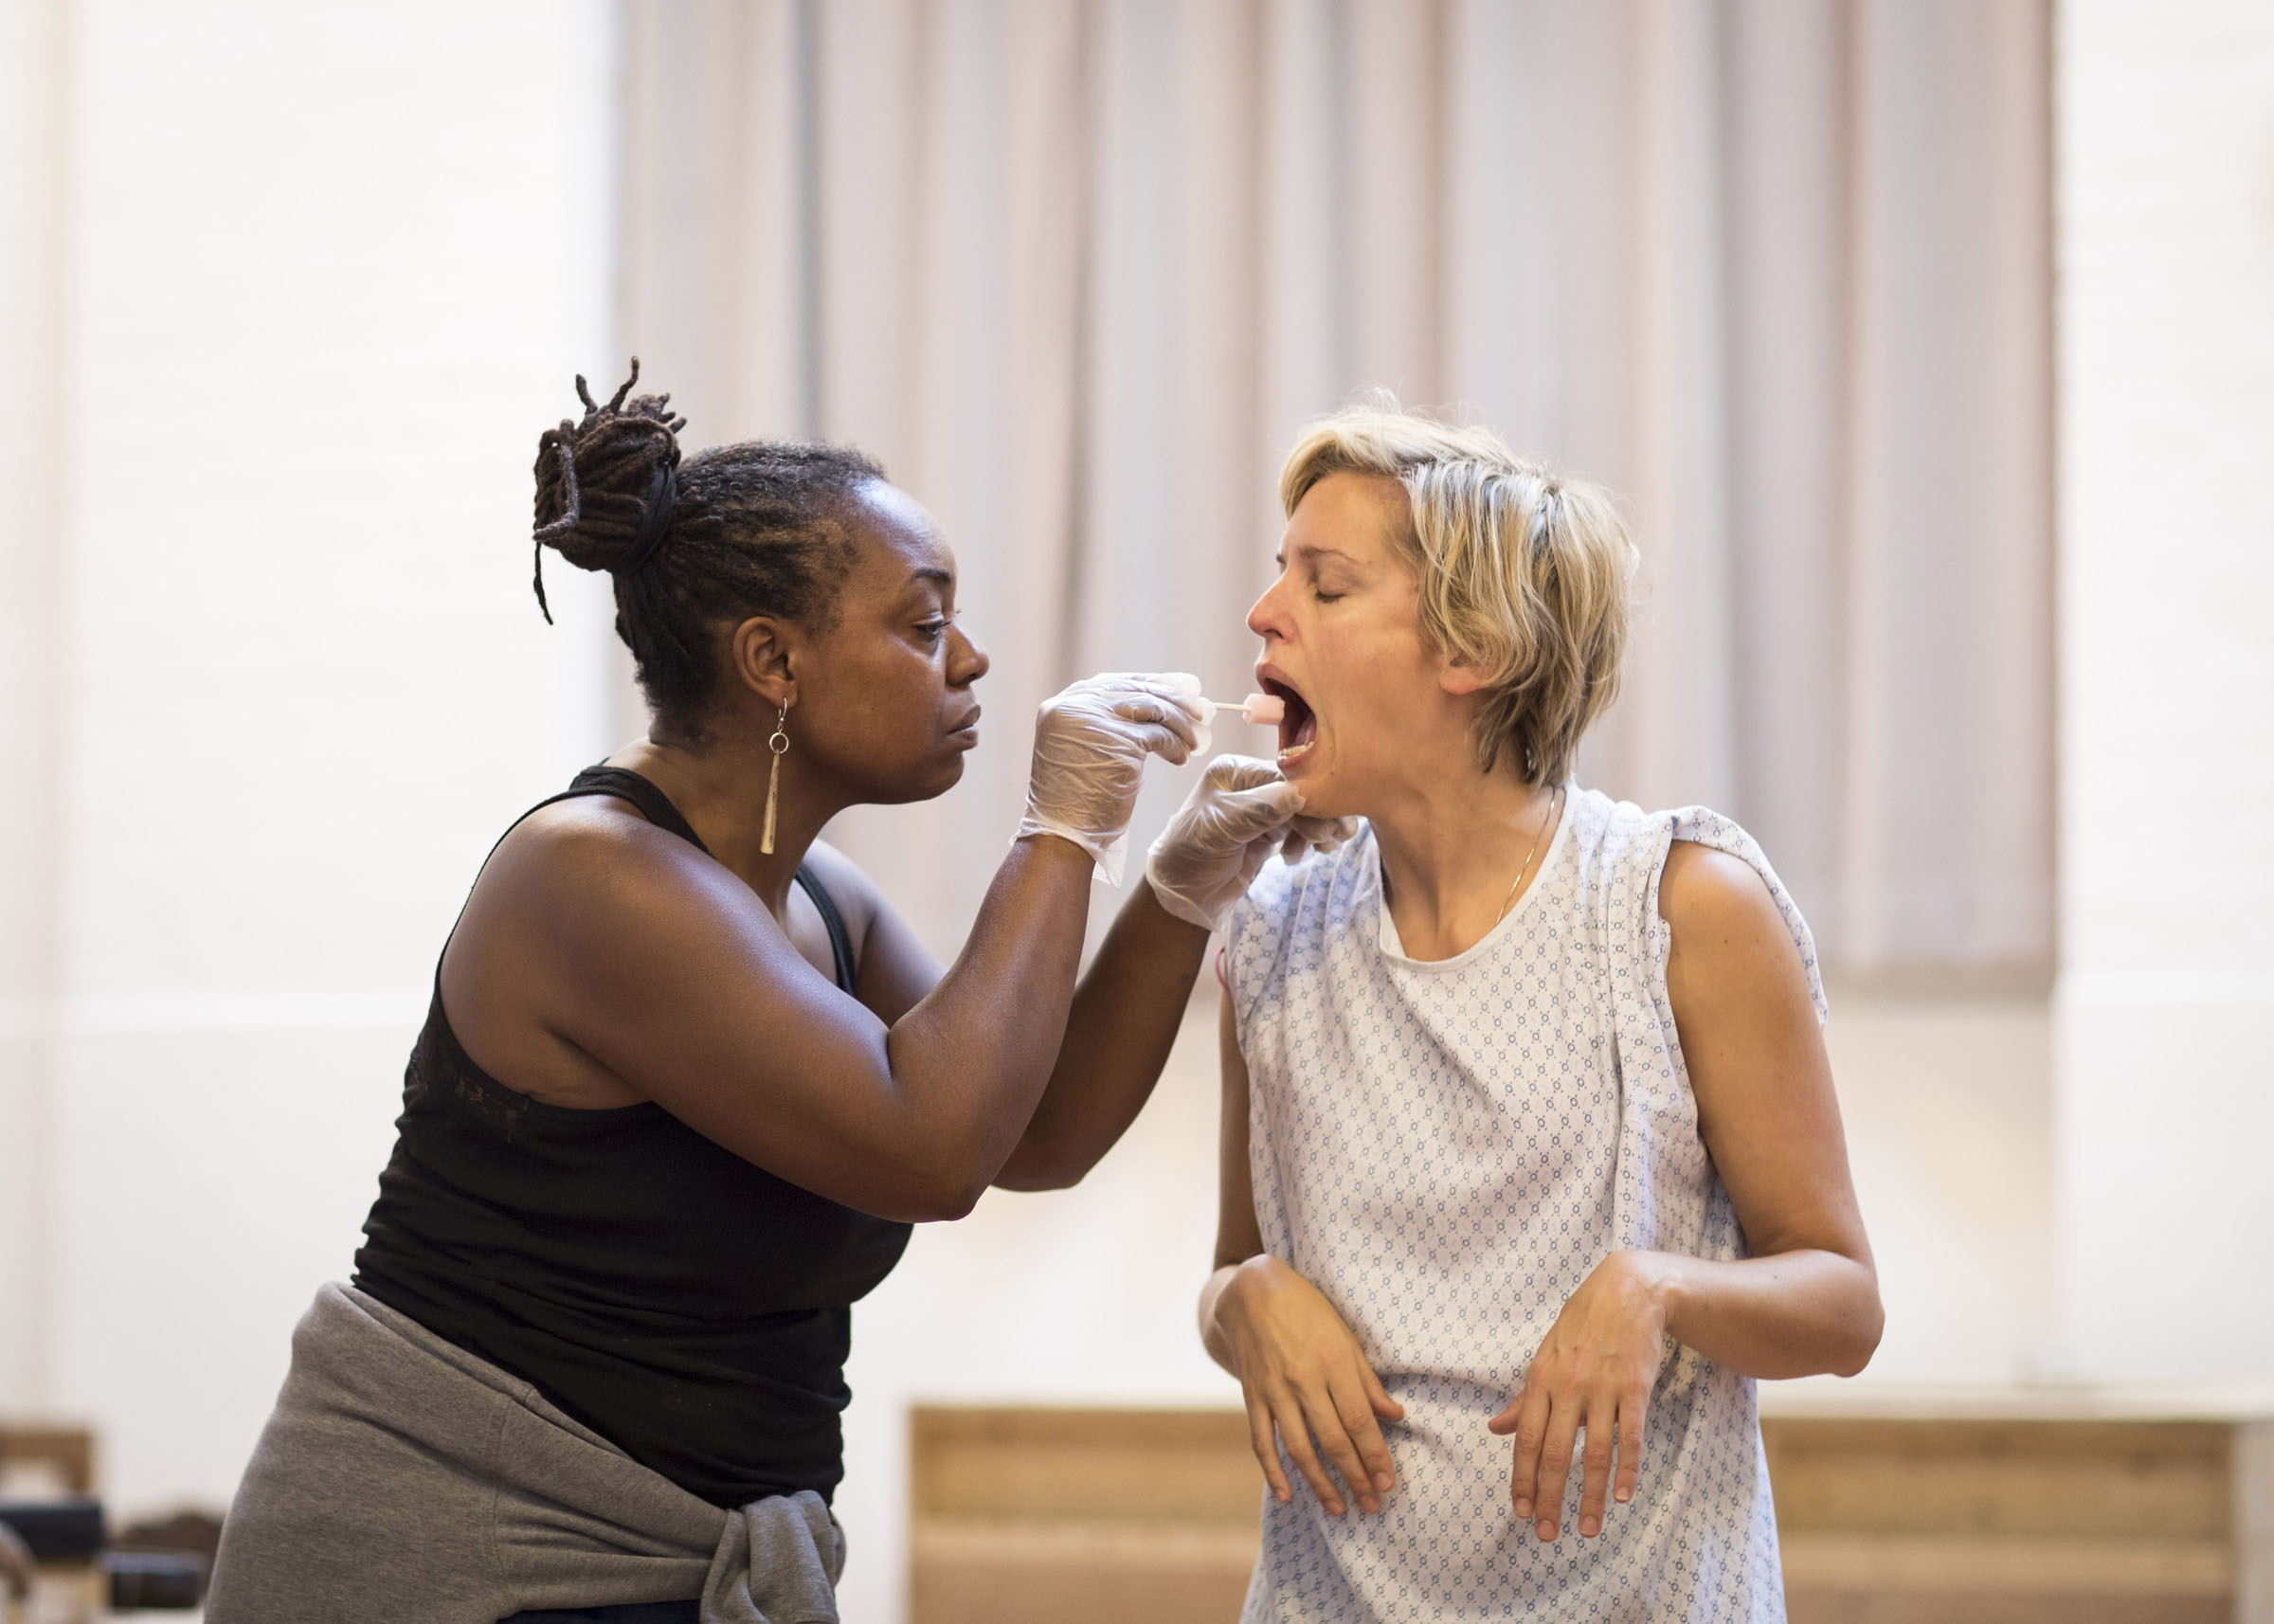 Jacqui Dubois and Denise Denise Gough